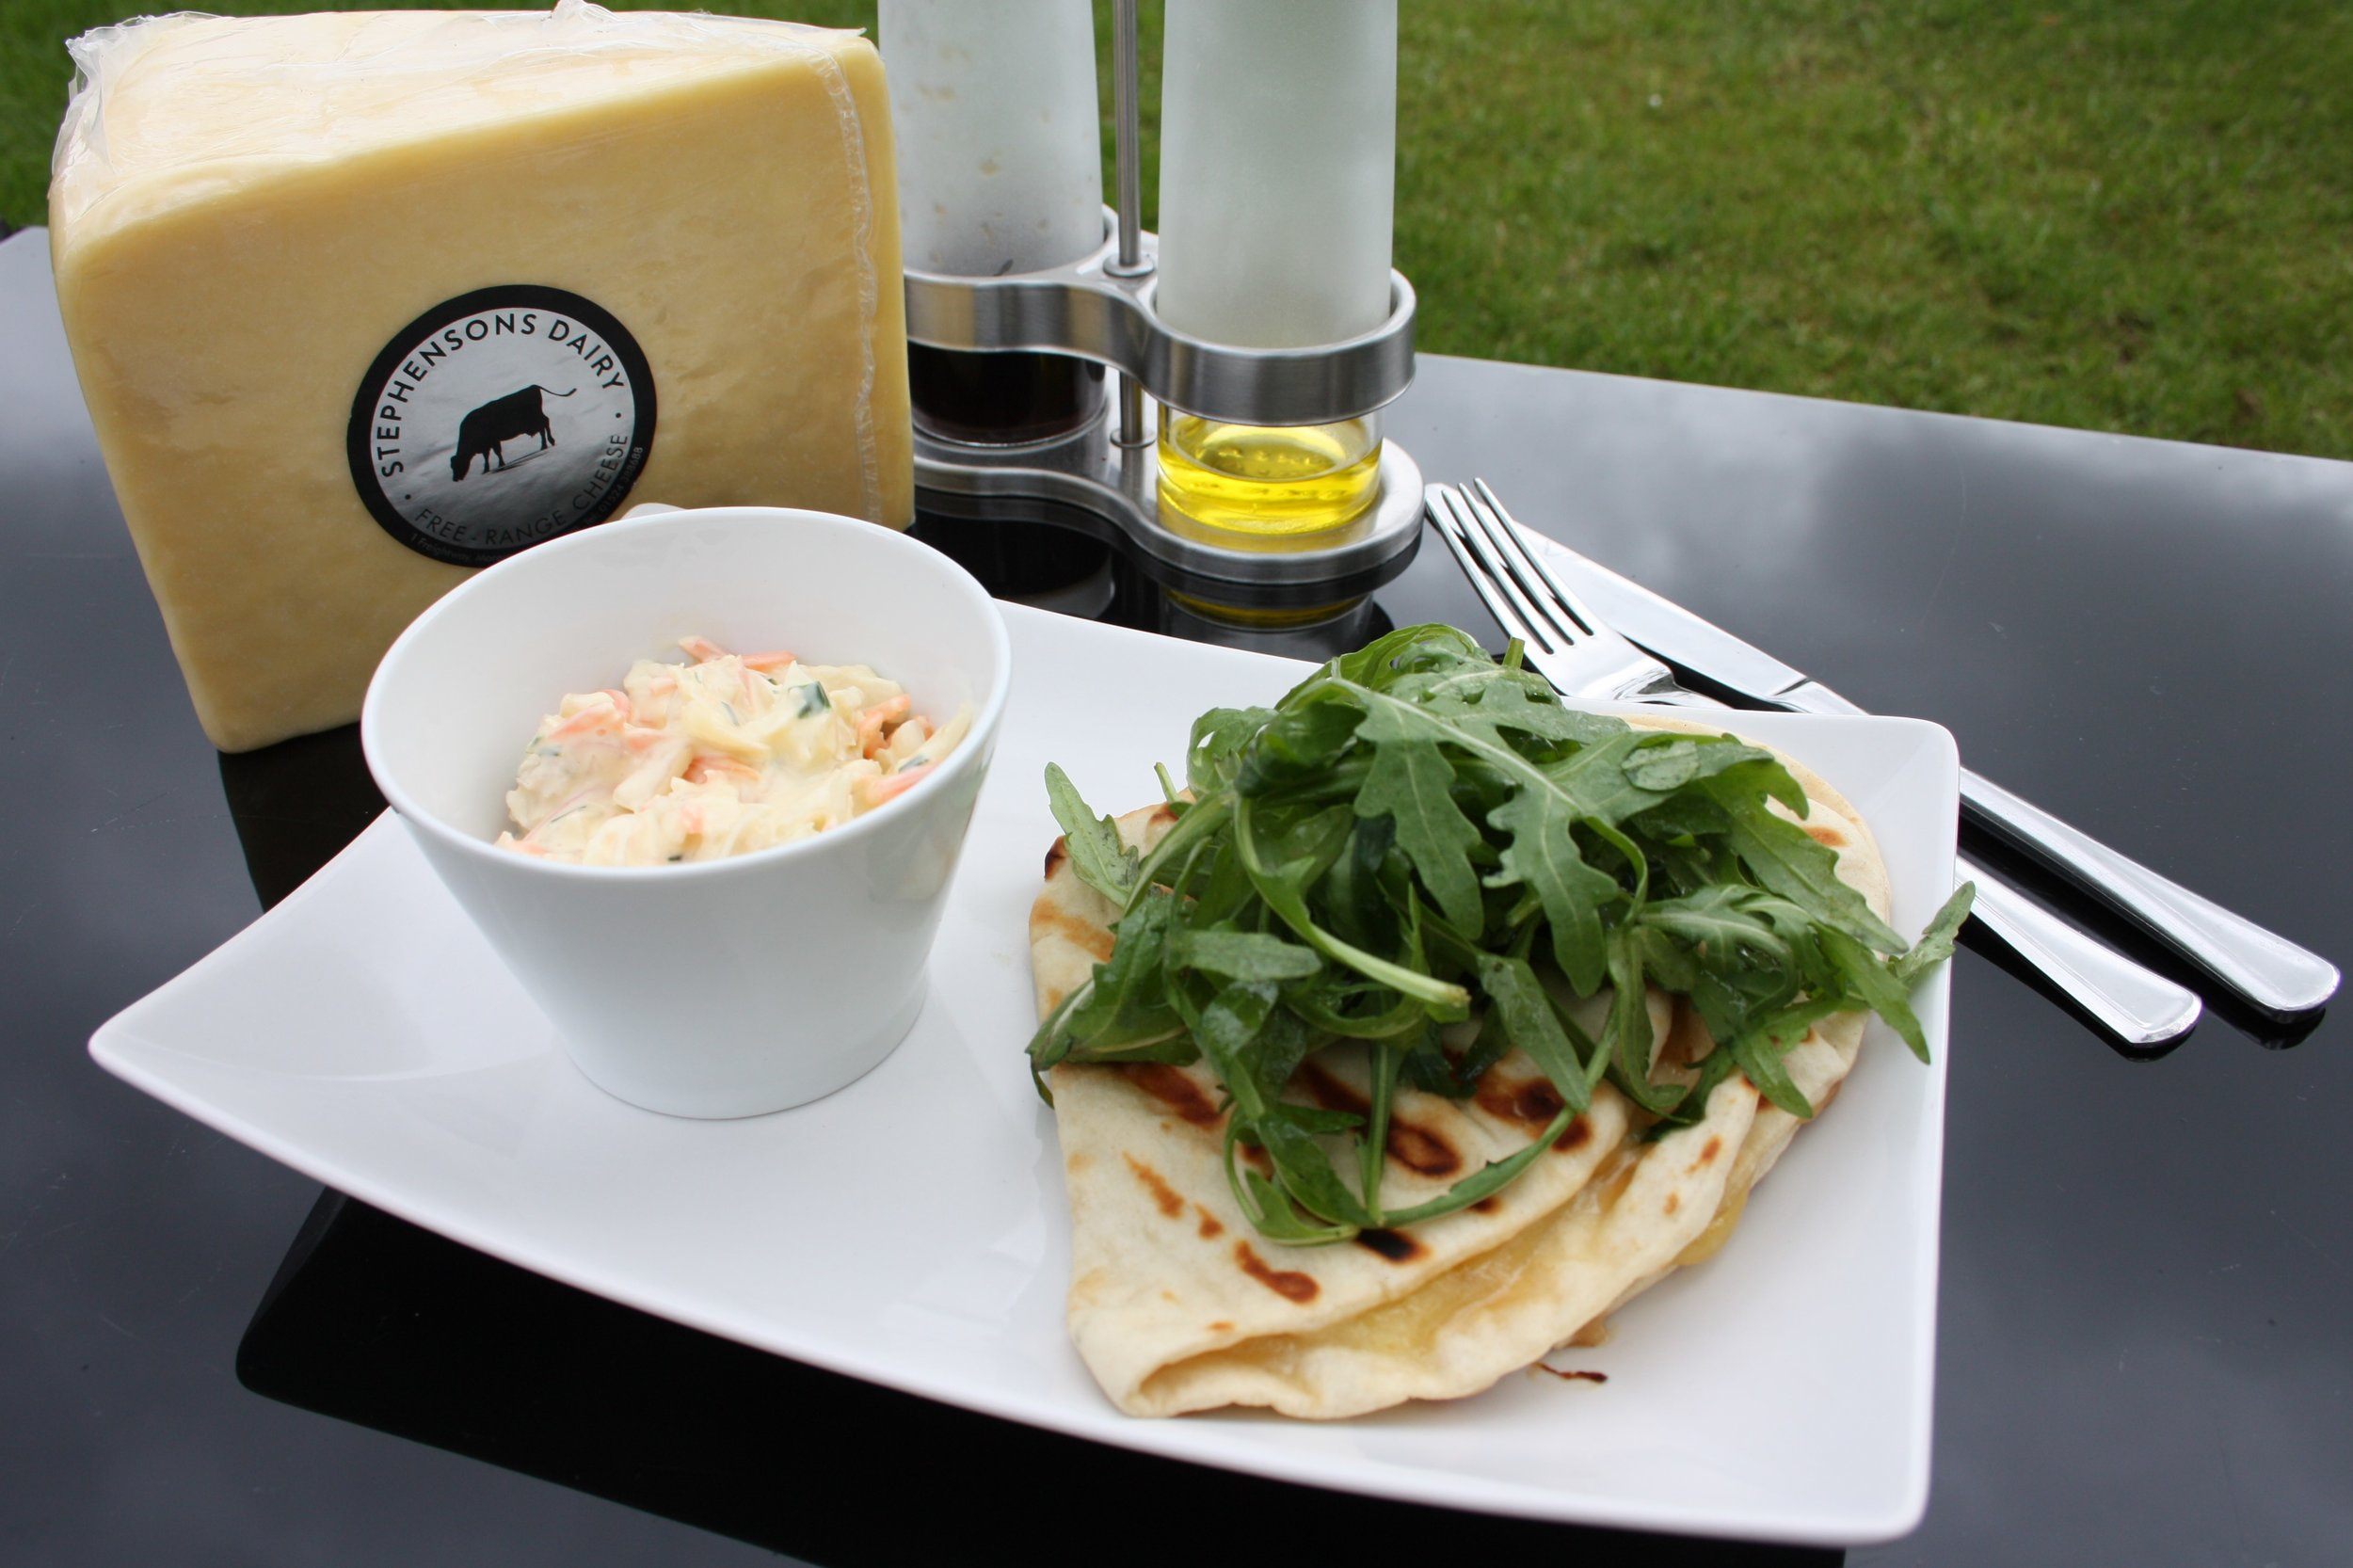 Grilled Lancashire Flatbreads - Serves 4200g Stephensons Free Range Lancashire Cheese4 flatbreads (can be gluten-free)8 teaspoons red onion chutney70 g rocket1 tbsp olive oil1 tbsp balsamic vinegarColeslaw, to serve (optional)Method1. Begin making the rocket salad. Pour the oil and vinegar into a large bowl and beat with a fork until thoroughly blended. Tip in the rocket and lightly mix together. Set aside.2. Slice the cheese thinly and place on one side of a flatbread. Spread the other side with 2 teaspoons of the chutney and fold in half. Repeat for the remaining 3 flatbreads. Grill in a panini maker or a lightly oiled frying pan until the cheese melts and the outside is lightly toasted.3. To serve, top the grilled flatbread with the rocket salad, and serve with a side of coleslaw.